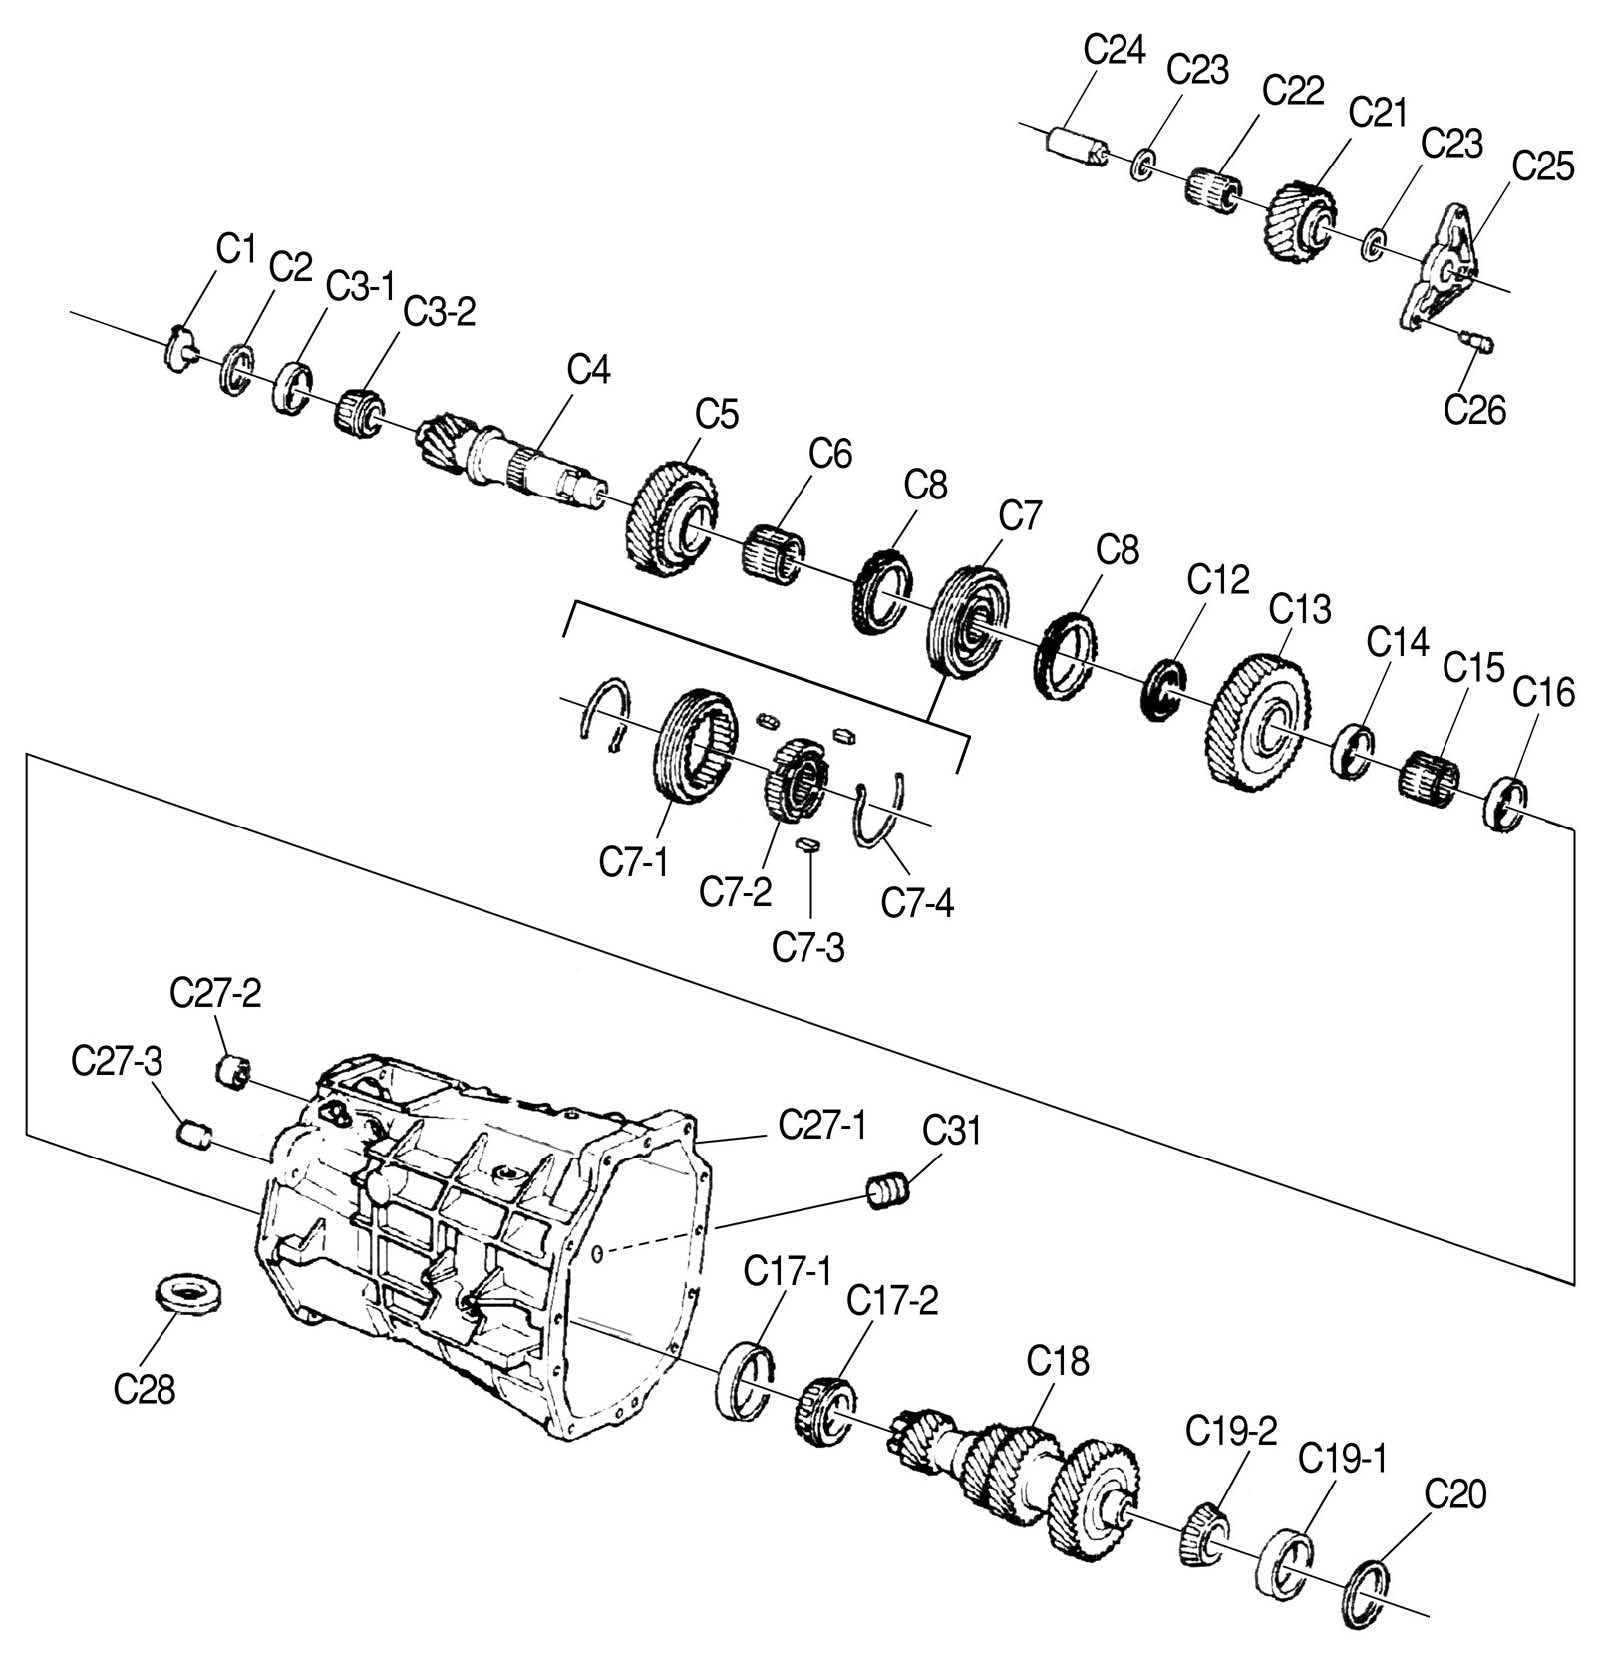 T56 Manual Transmission Diagram, T56, Free Engine Image